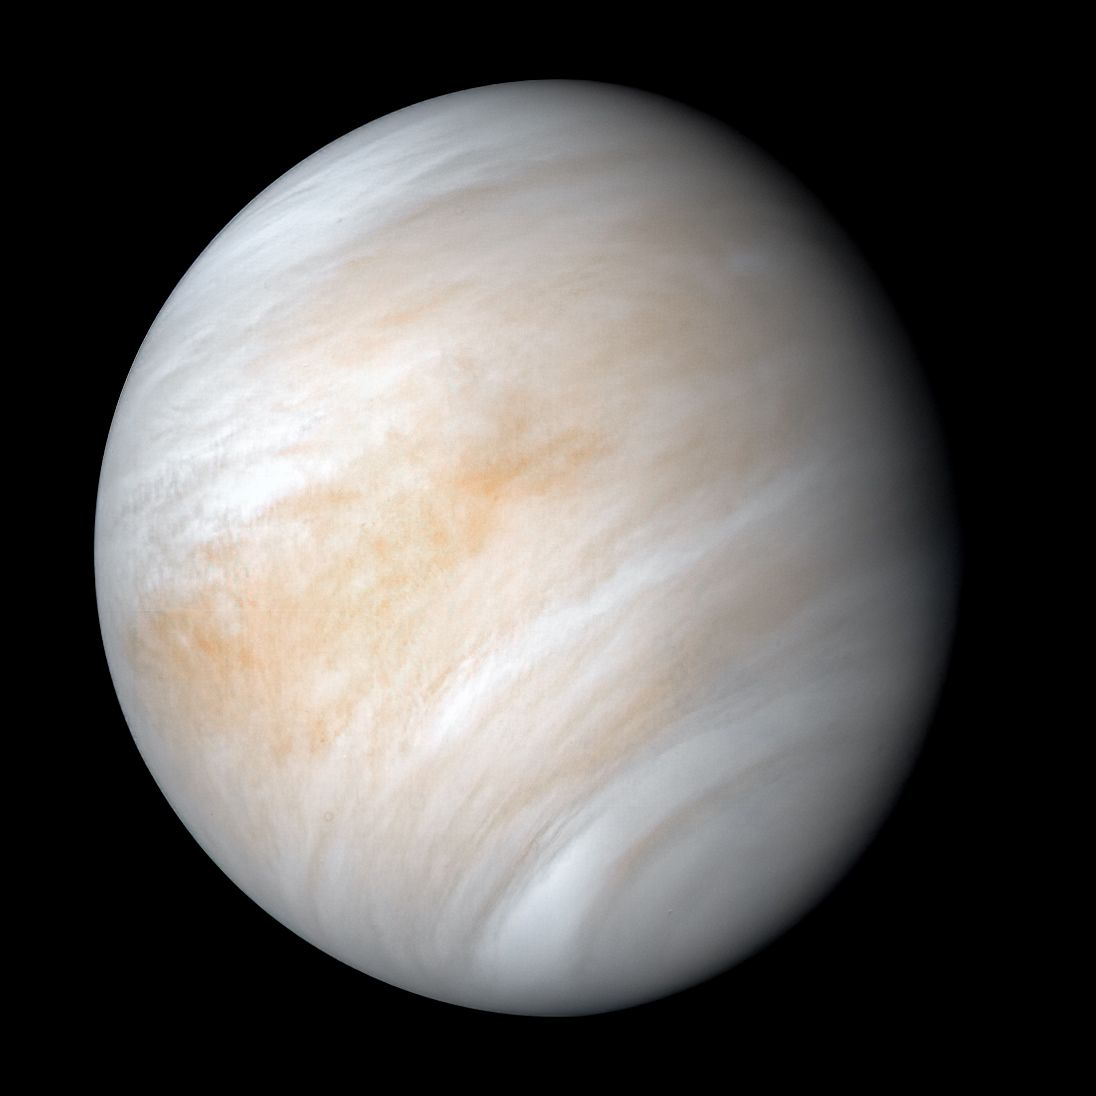 You are currently viewing Amino acid found in the atmosphere of Venus